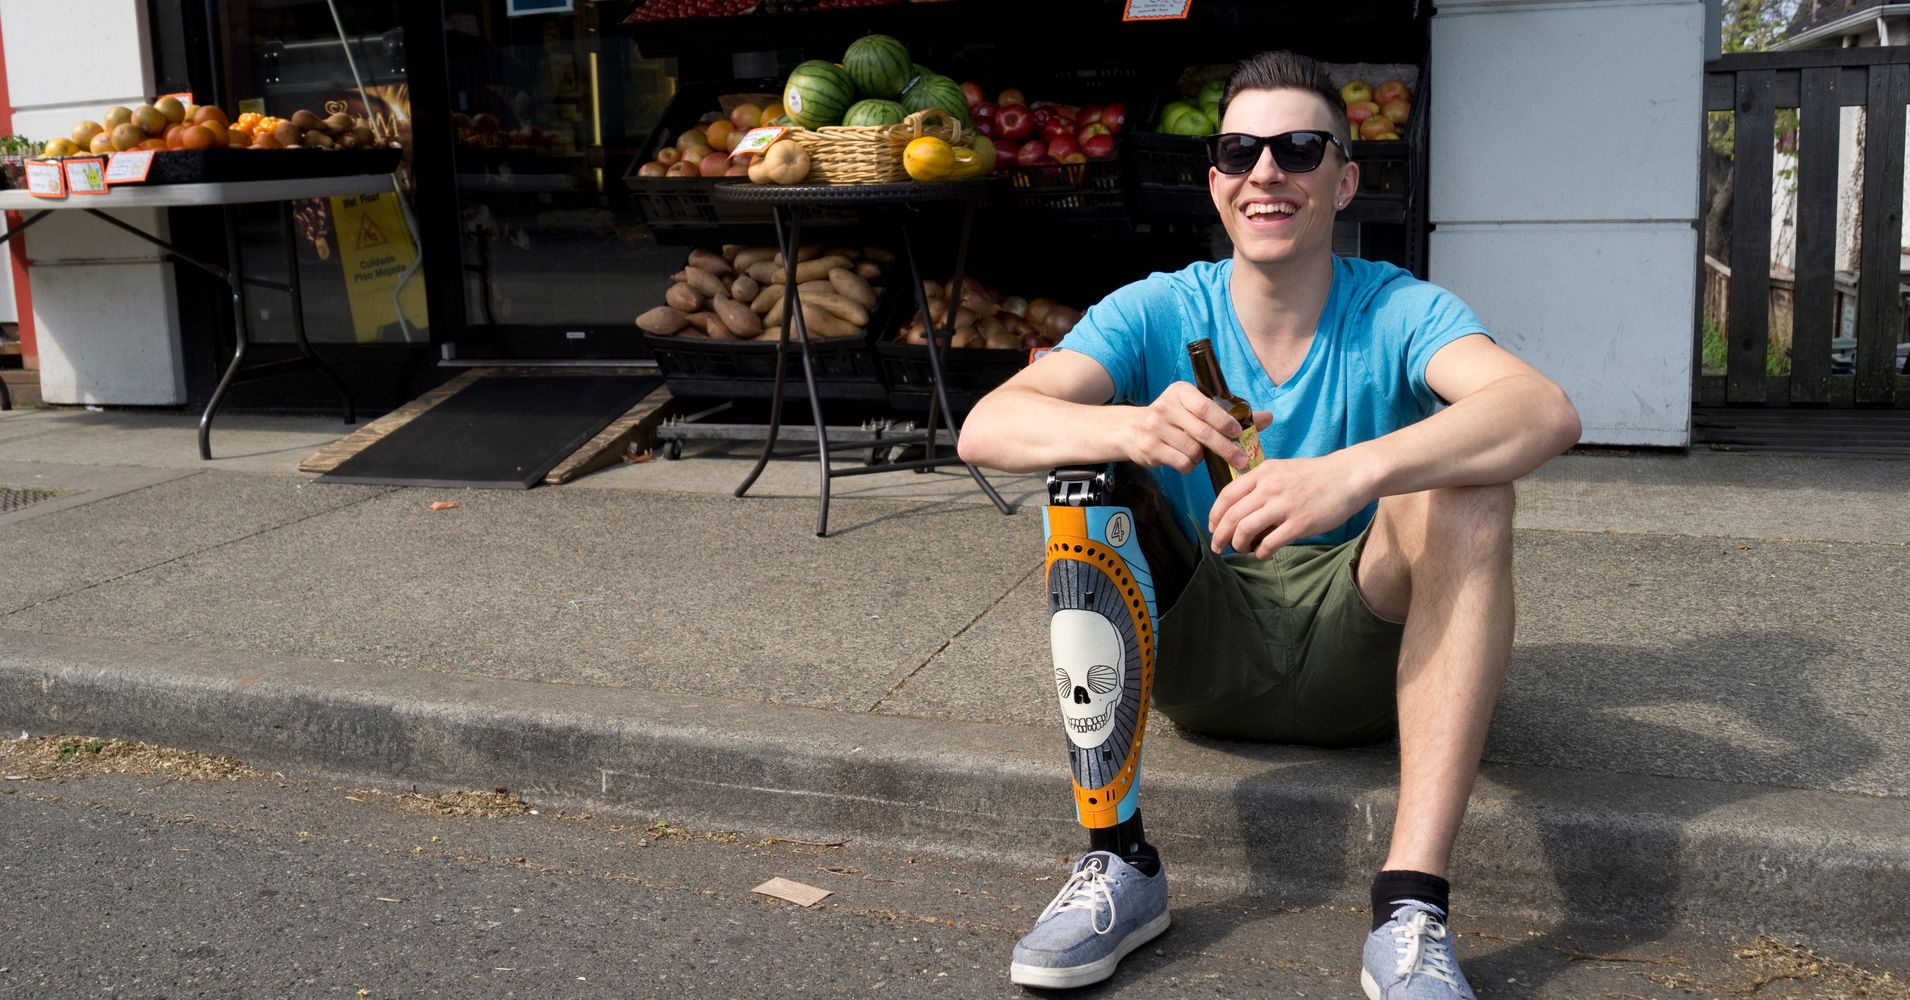 Dating someone with prosthetic legs